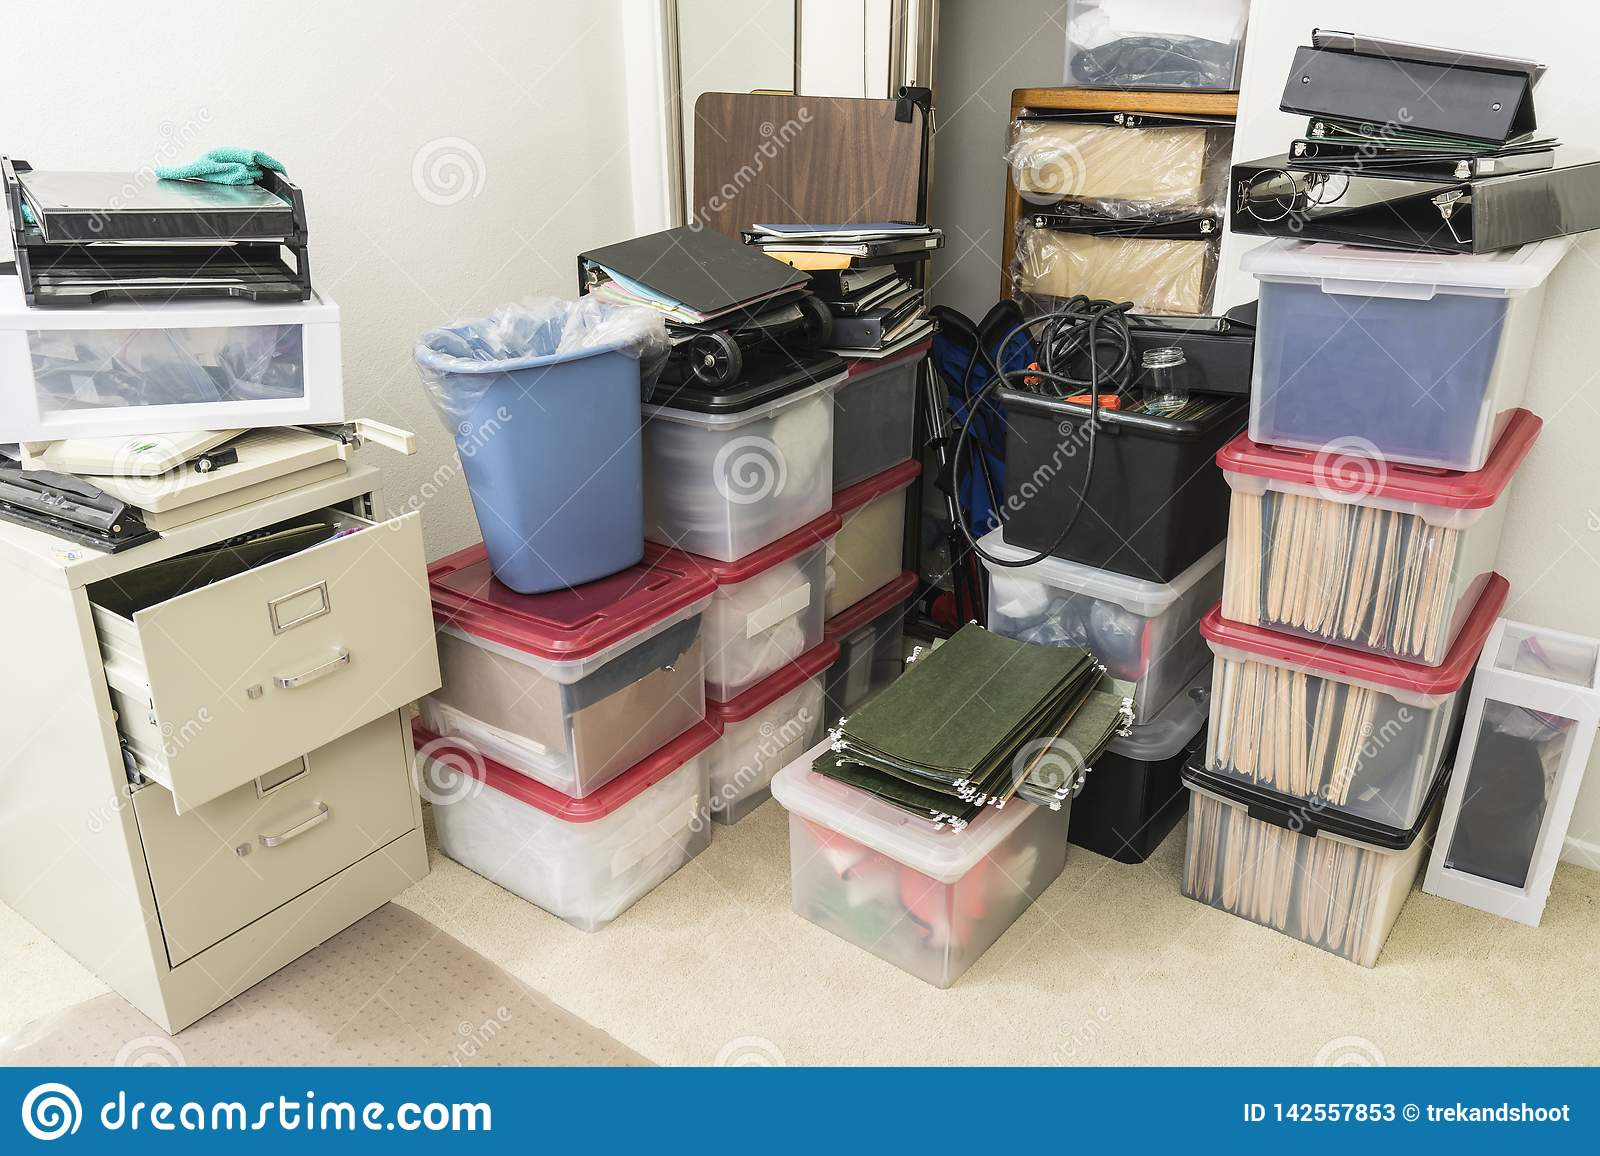 Cluttered Corner In Small Office Stock Image Image Of Unit Full 142557853